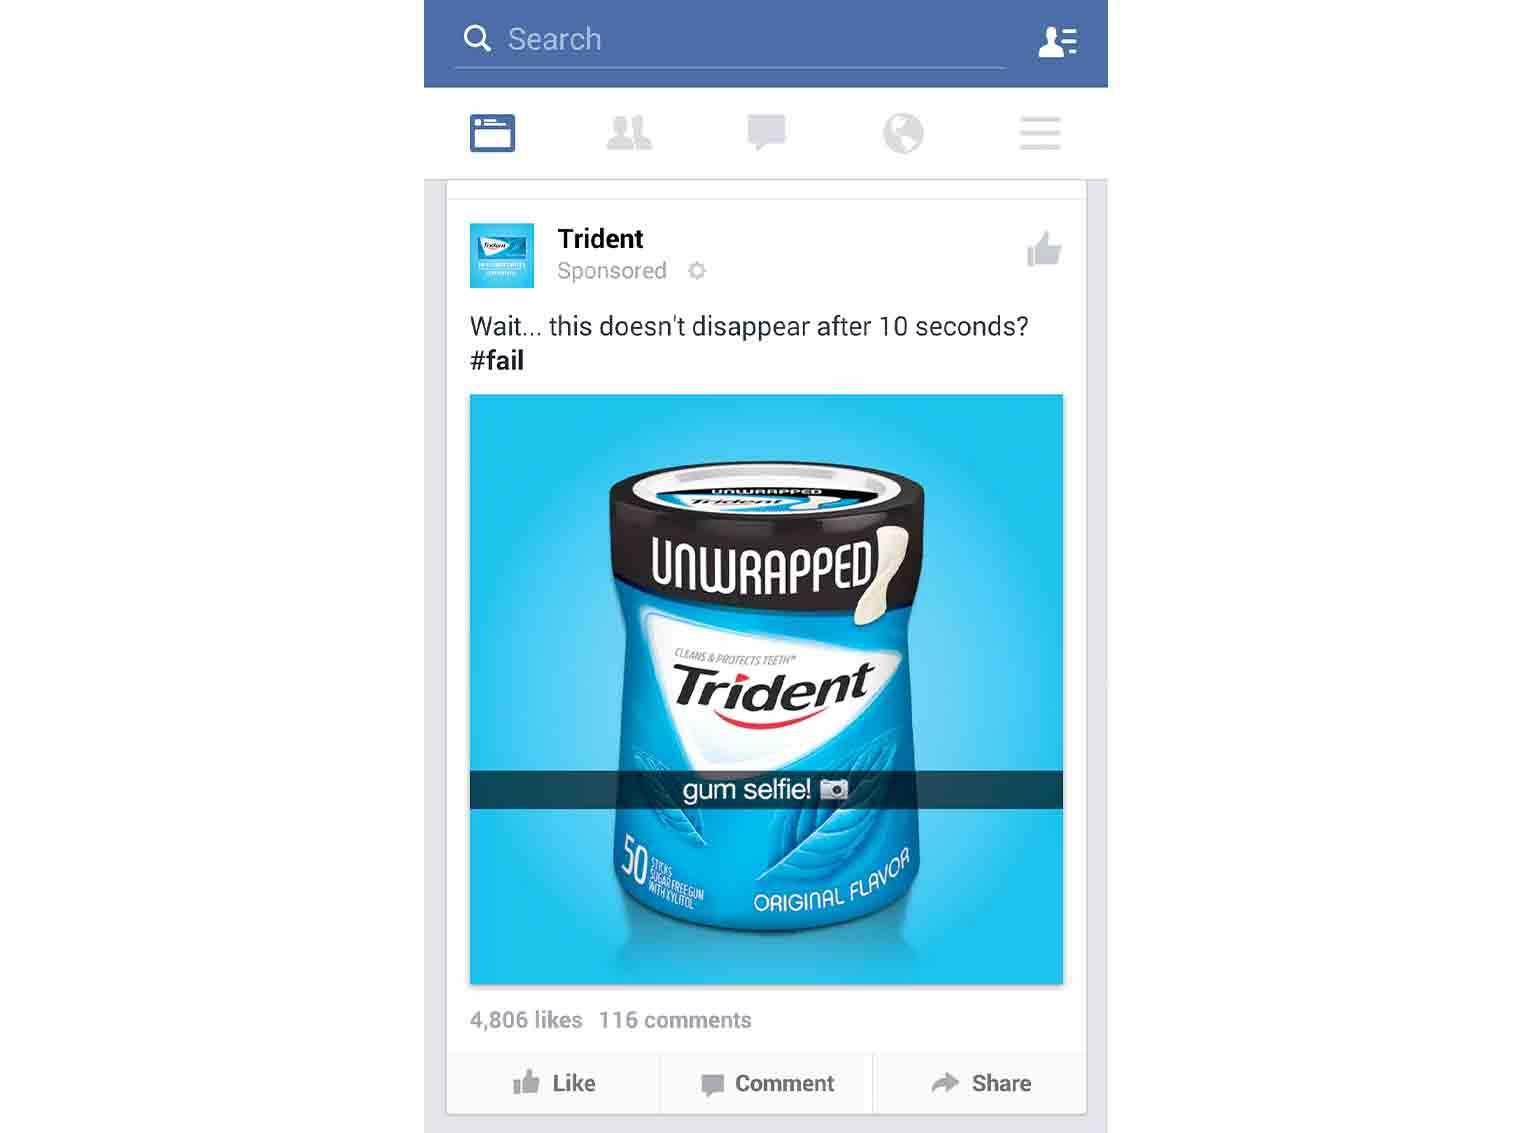 Trident's attempt at a meme misses the mark.